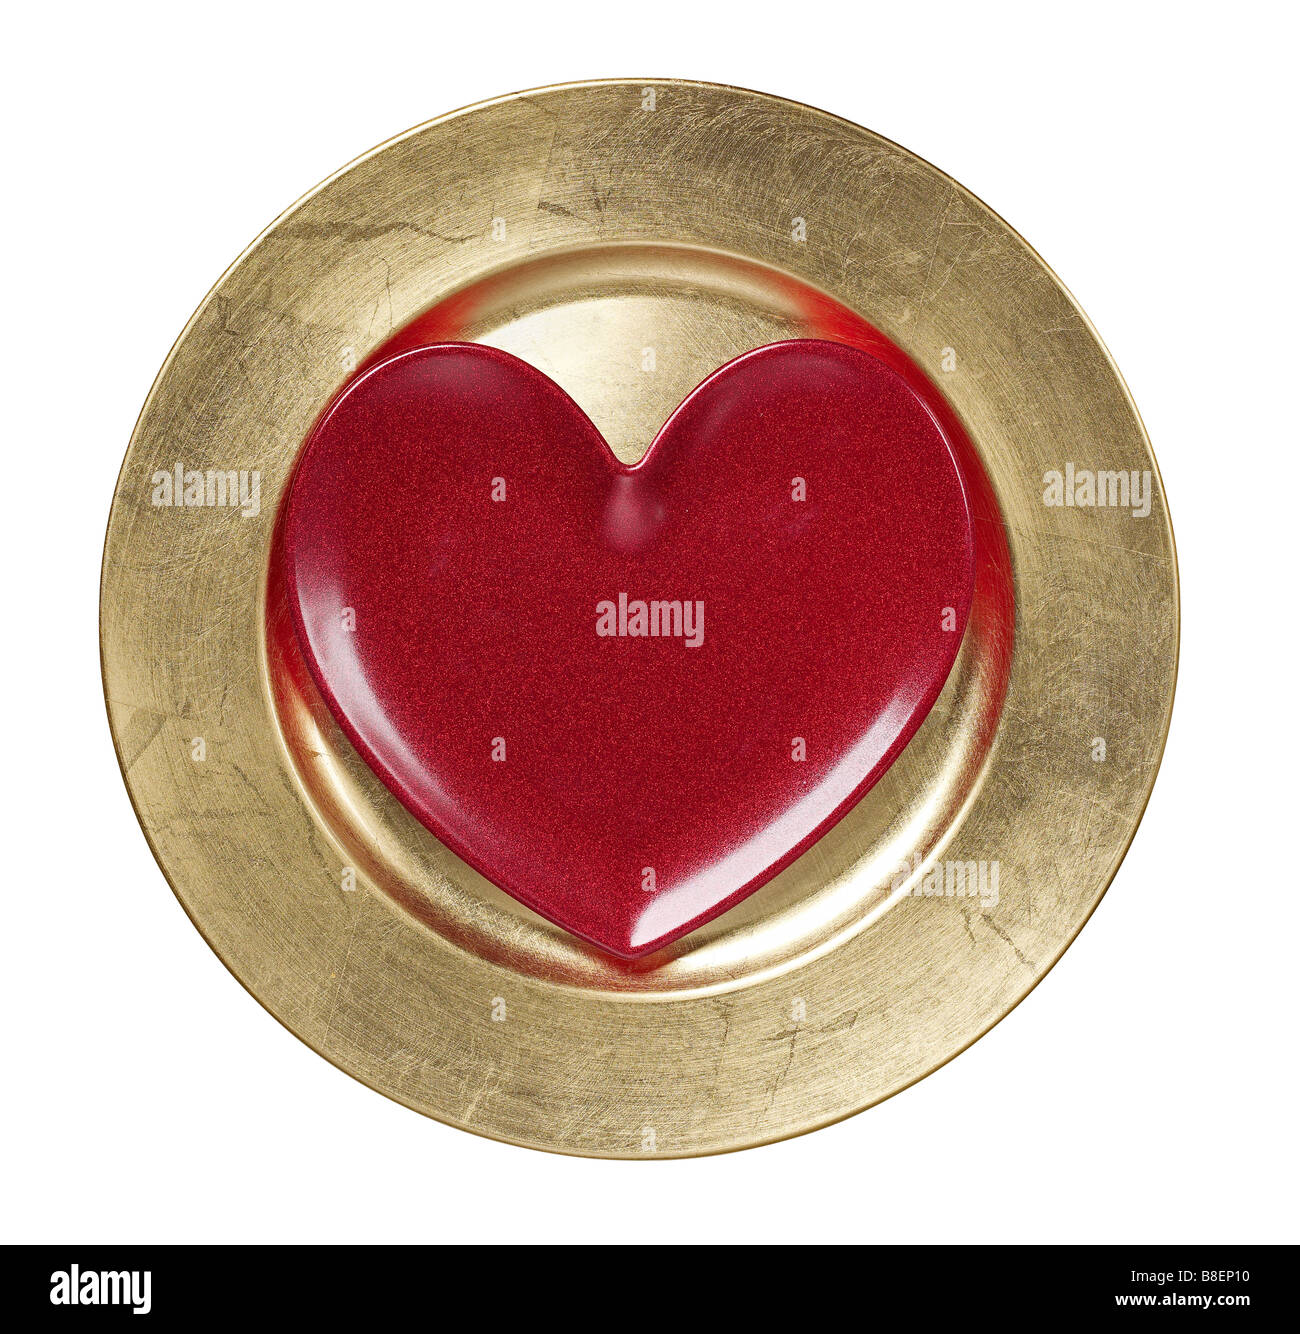 Heart on gold charger plate - Stock Image